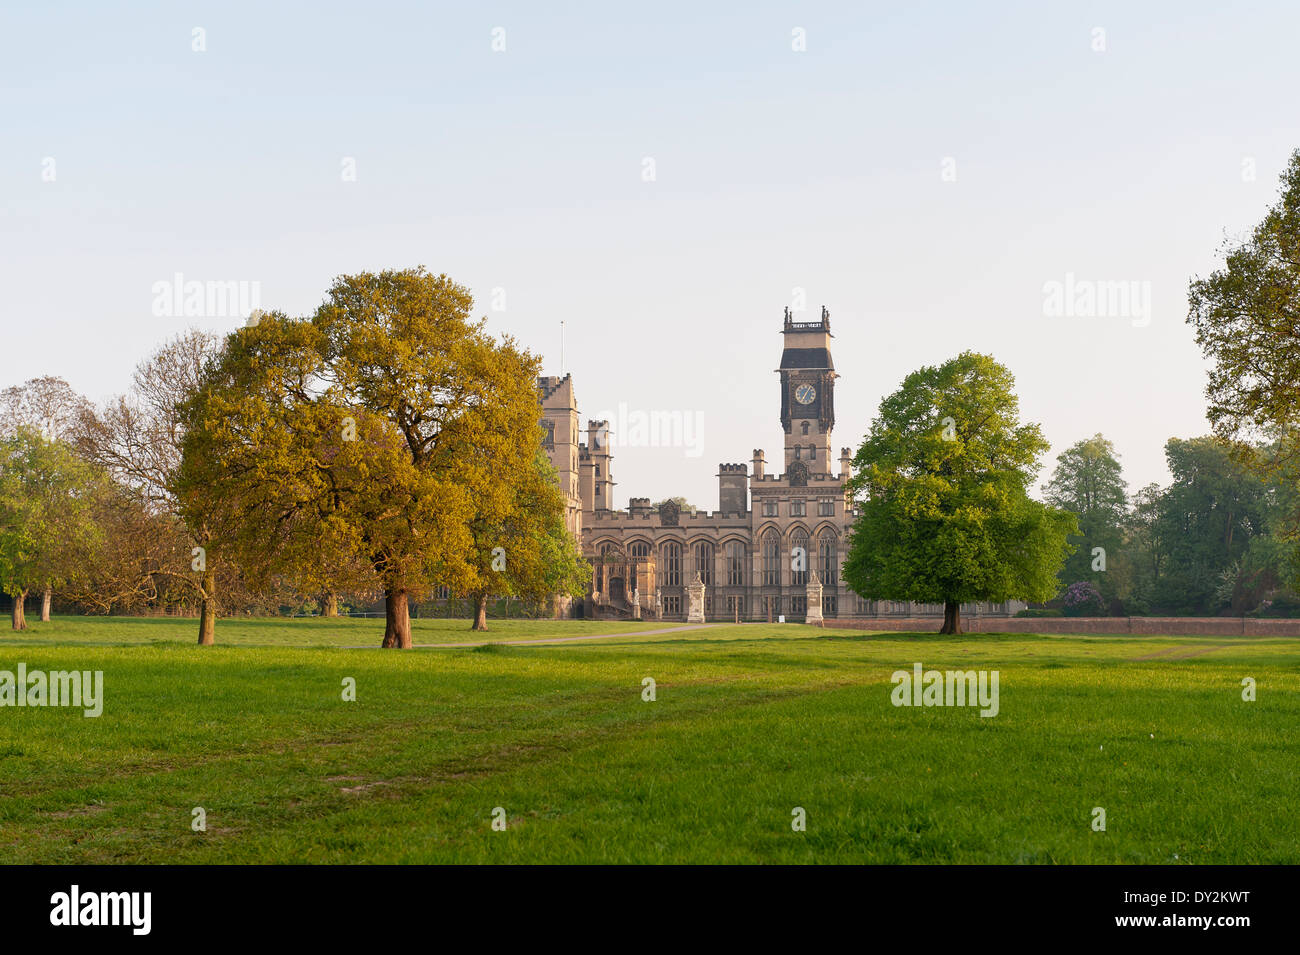 Exterior facade of the imposing Carlton Towers, a 15th century stately home - Stock Image